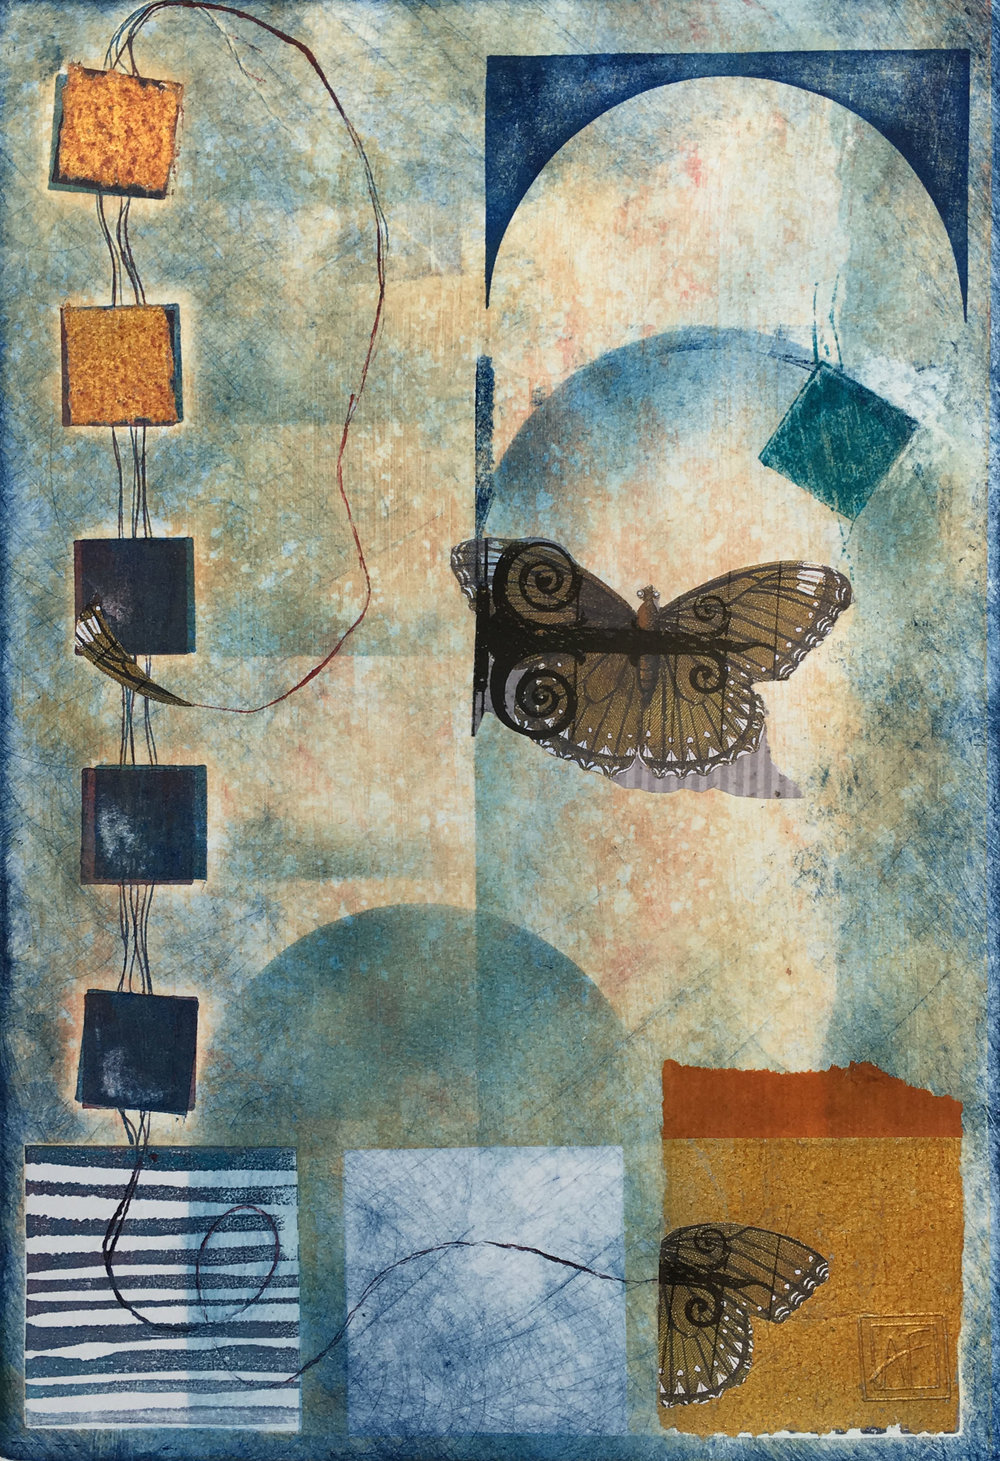 "<p><strong>ANN FORBUSH</strong>printmaking, mixed media<a href=""/ann-forbush"">More →</a></p>"